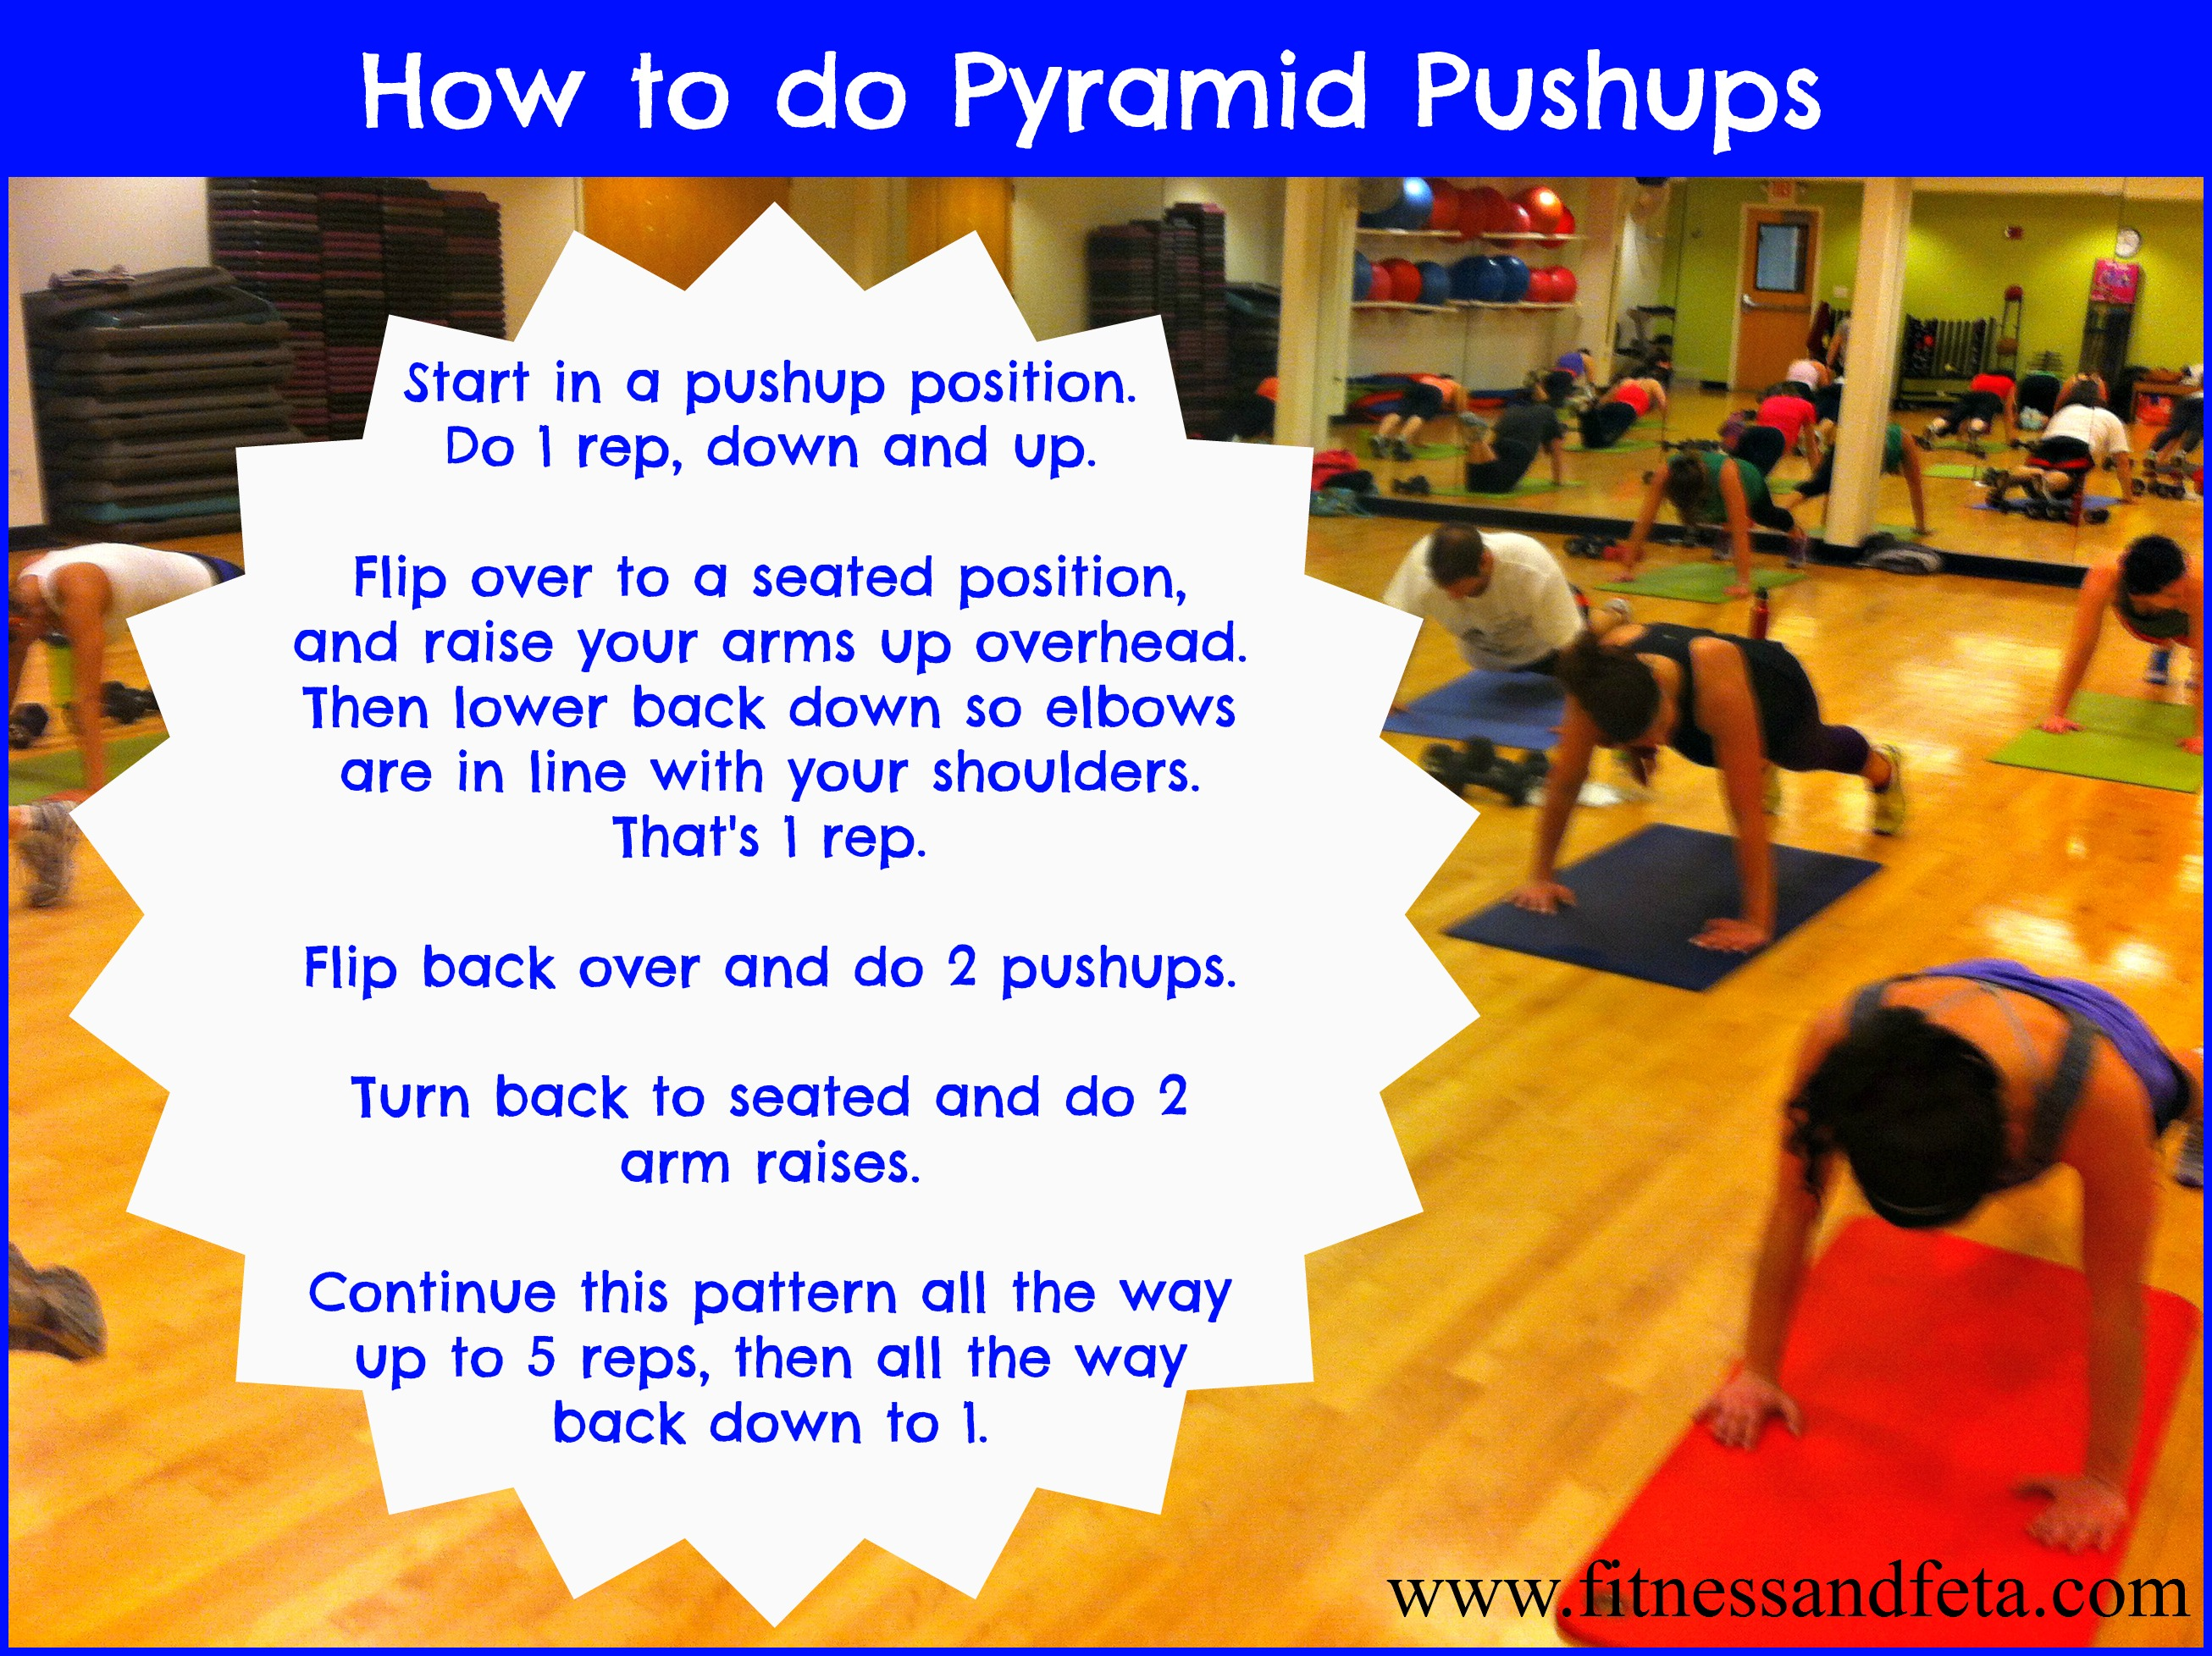 How to do pyramid pushups